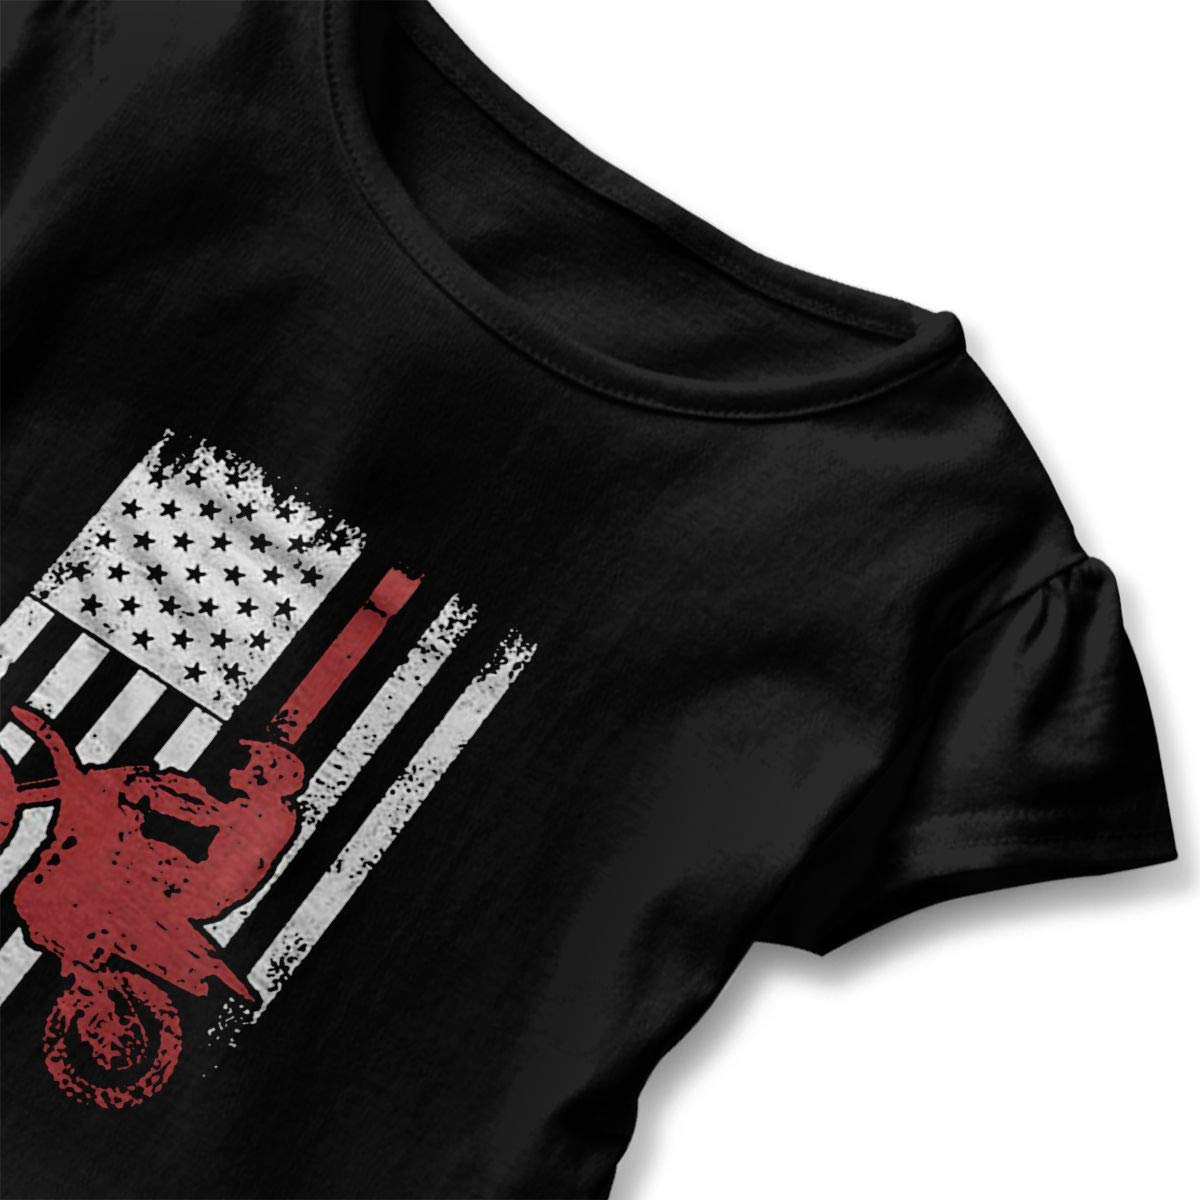 Cheng Jian Bo USA Flag Dirtbike Motocross Toddler Girls T Shirt Kids Cotton Short Sleeve Ruffle Tee